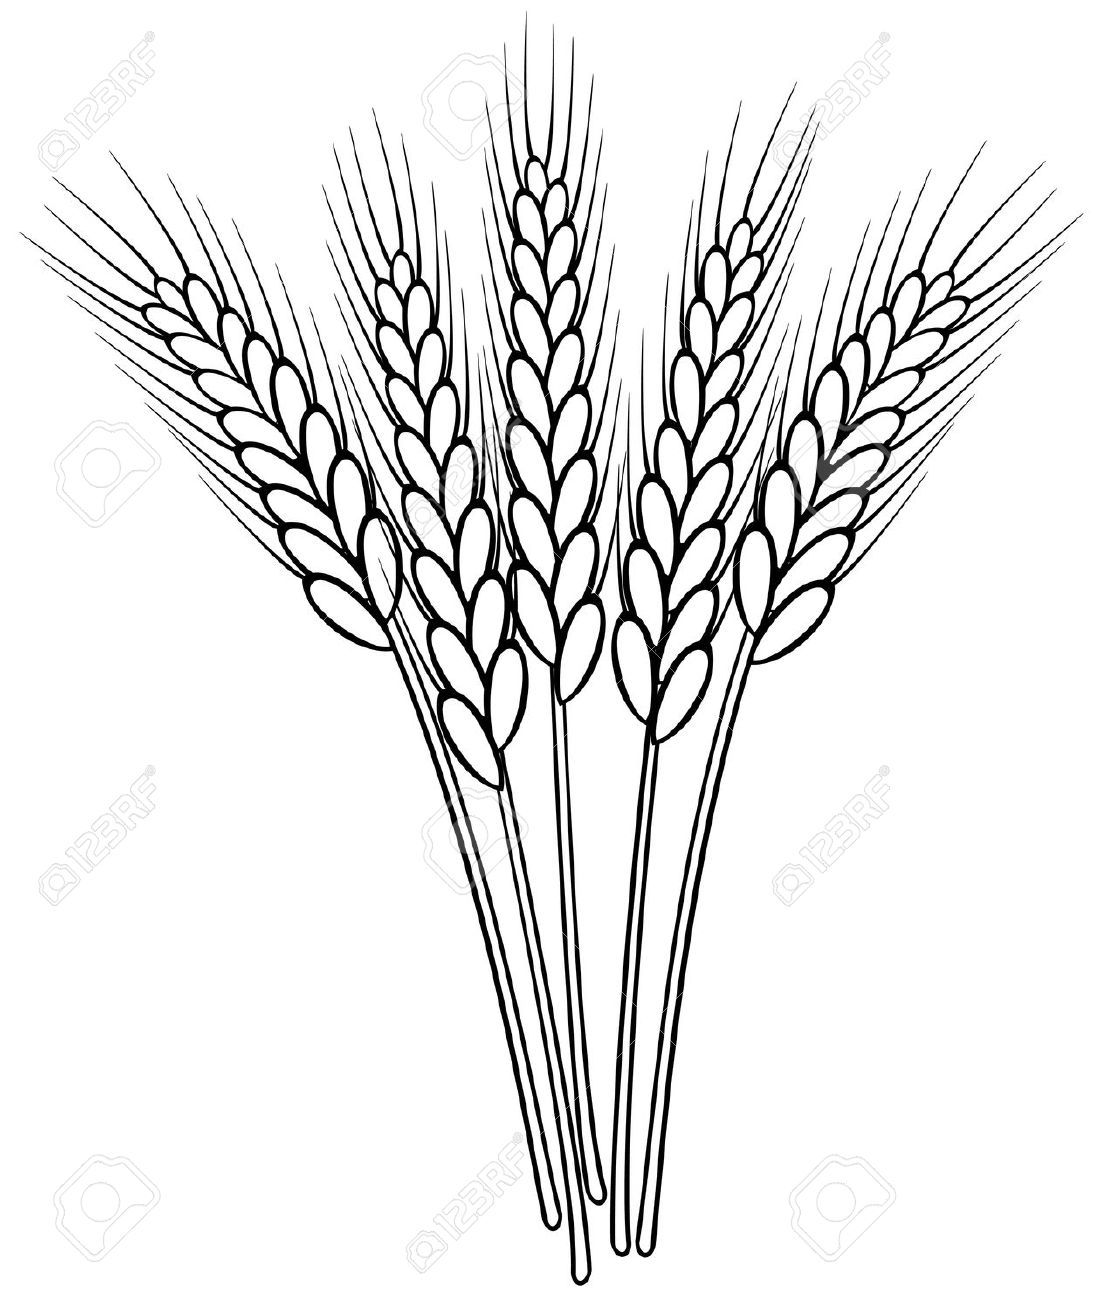 small wheat sheaf vector - Google Search | Ink | Pinterest ...